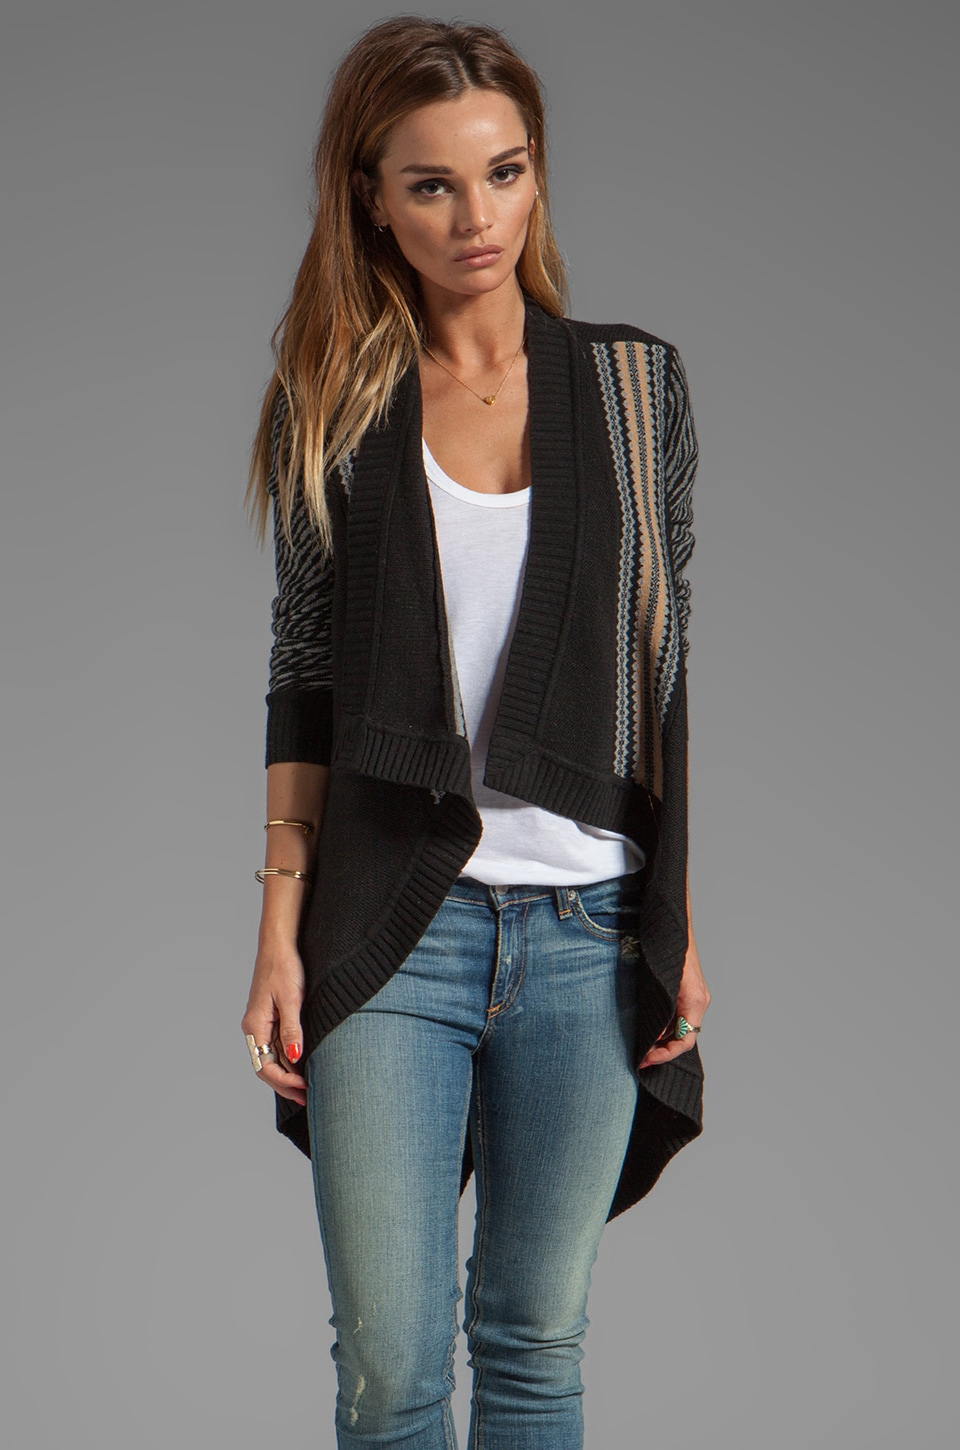 Nanette Lepore Meknes Knit Marvelous Cardigan in Black Multi